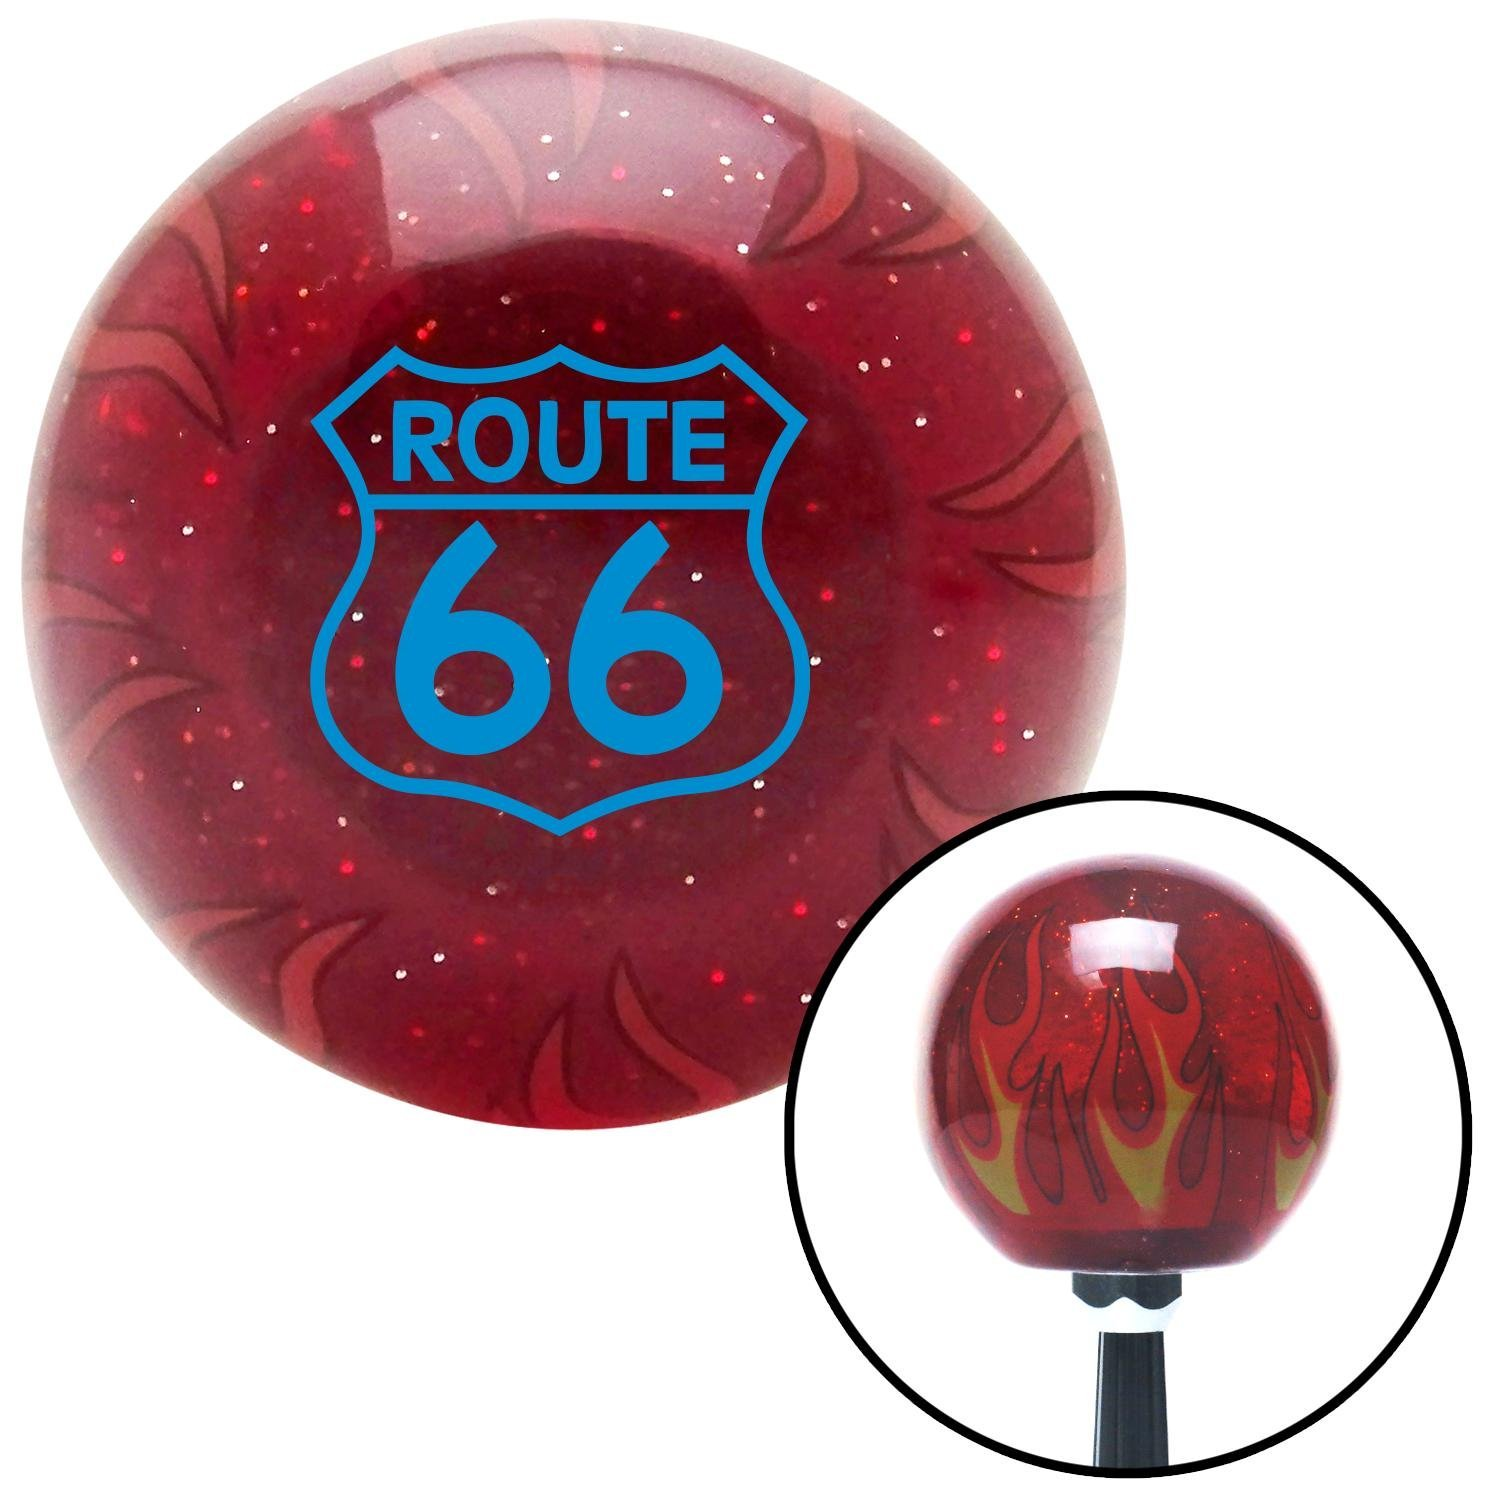 American Shifter 240251 Red Flame Metal Flake Shift Knob with M16 x 1.5 Insert Blue Route 66 Sign